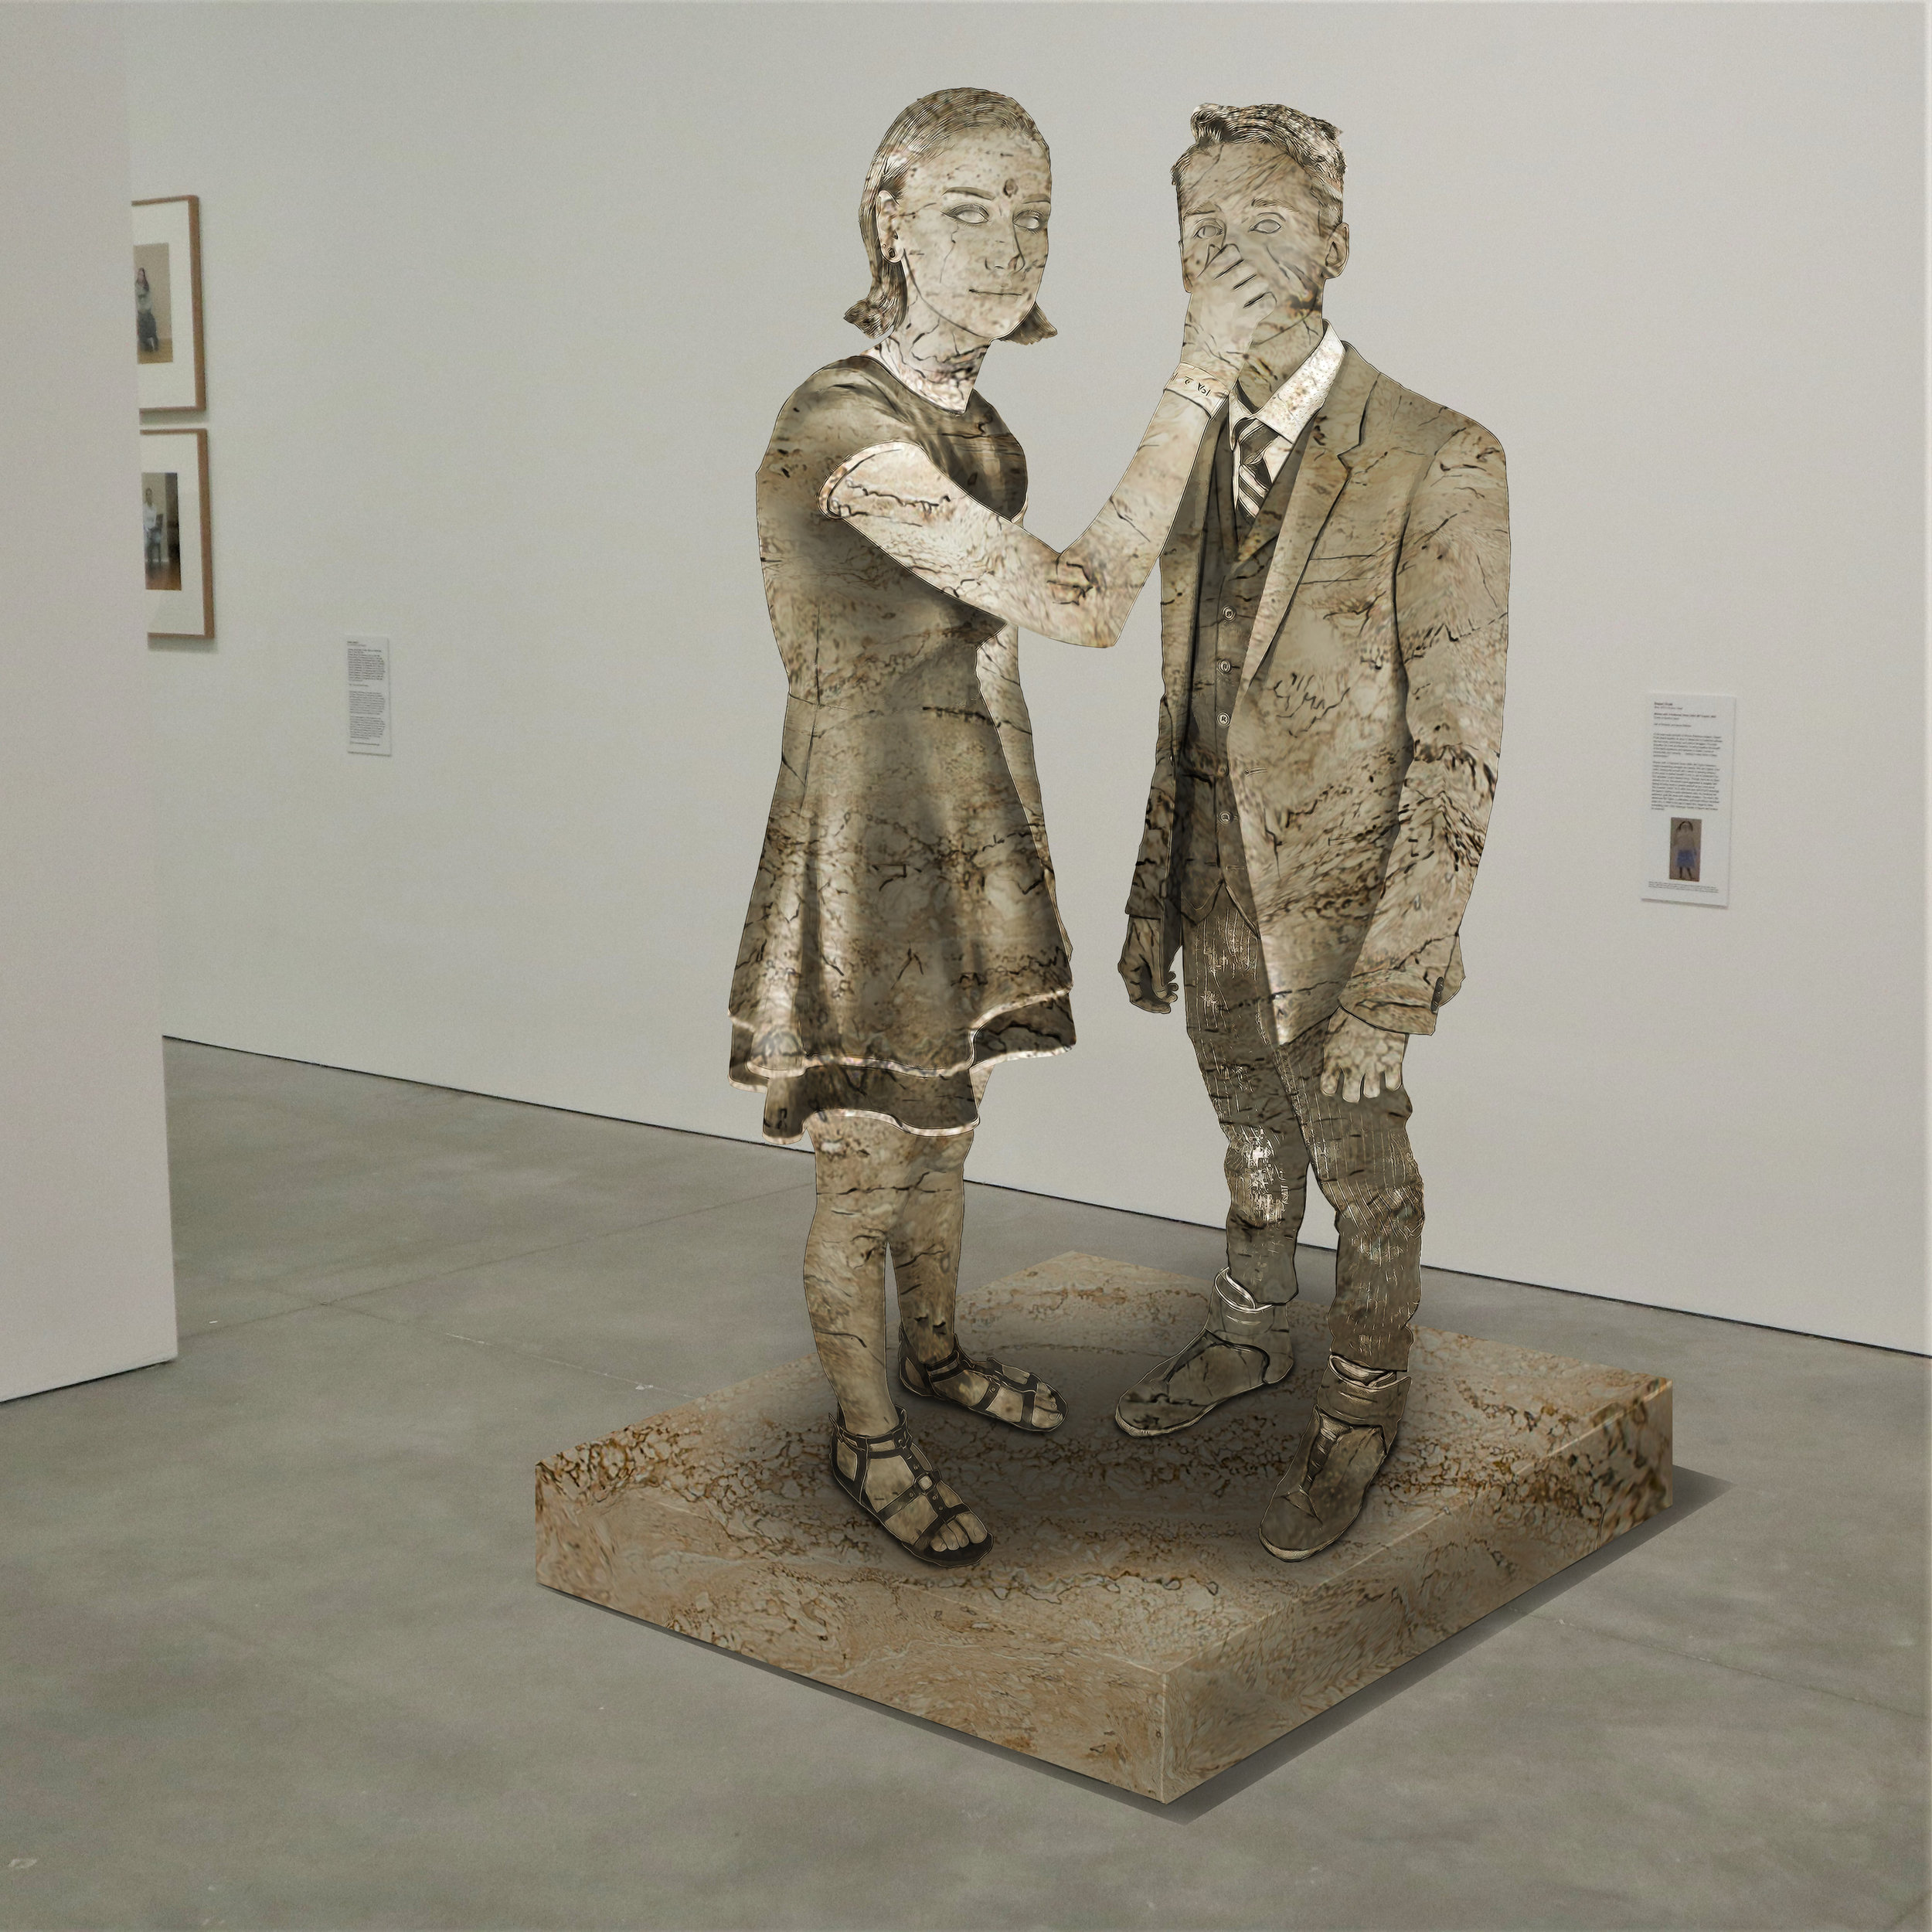 """Four-Twenty-Two"" travertine, Institute of Contemporary Art, Boston   2018  JPG  During an installation at the Institute of Contemporary Art in Boston, viewers were invited to imagine themselves as statues in the ICA's permanent collection. Participants were photographed posing as a statue they felt represented themselves, created a name for their fictional statue, and selected a stone from which their statue would be made. Professional and amateur digital artists were commissioned to create renderings of the statues, which were superimposed on photos of the ICA's permanent collection gallery space."